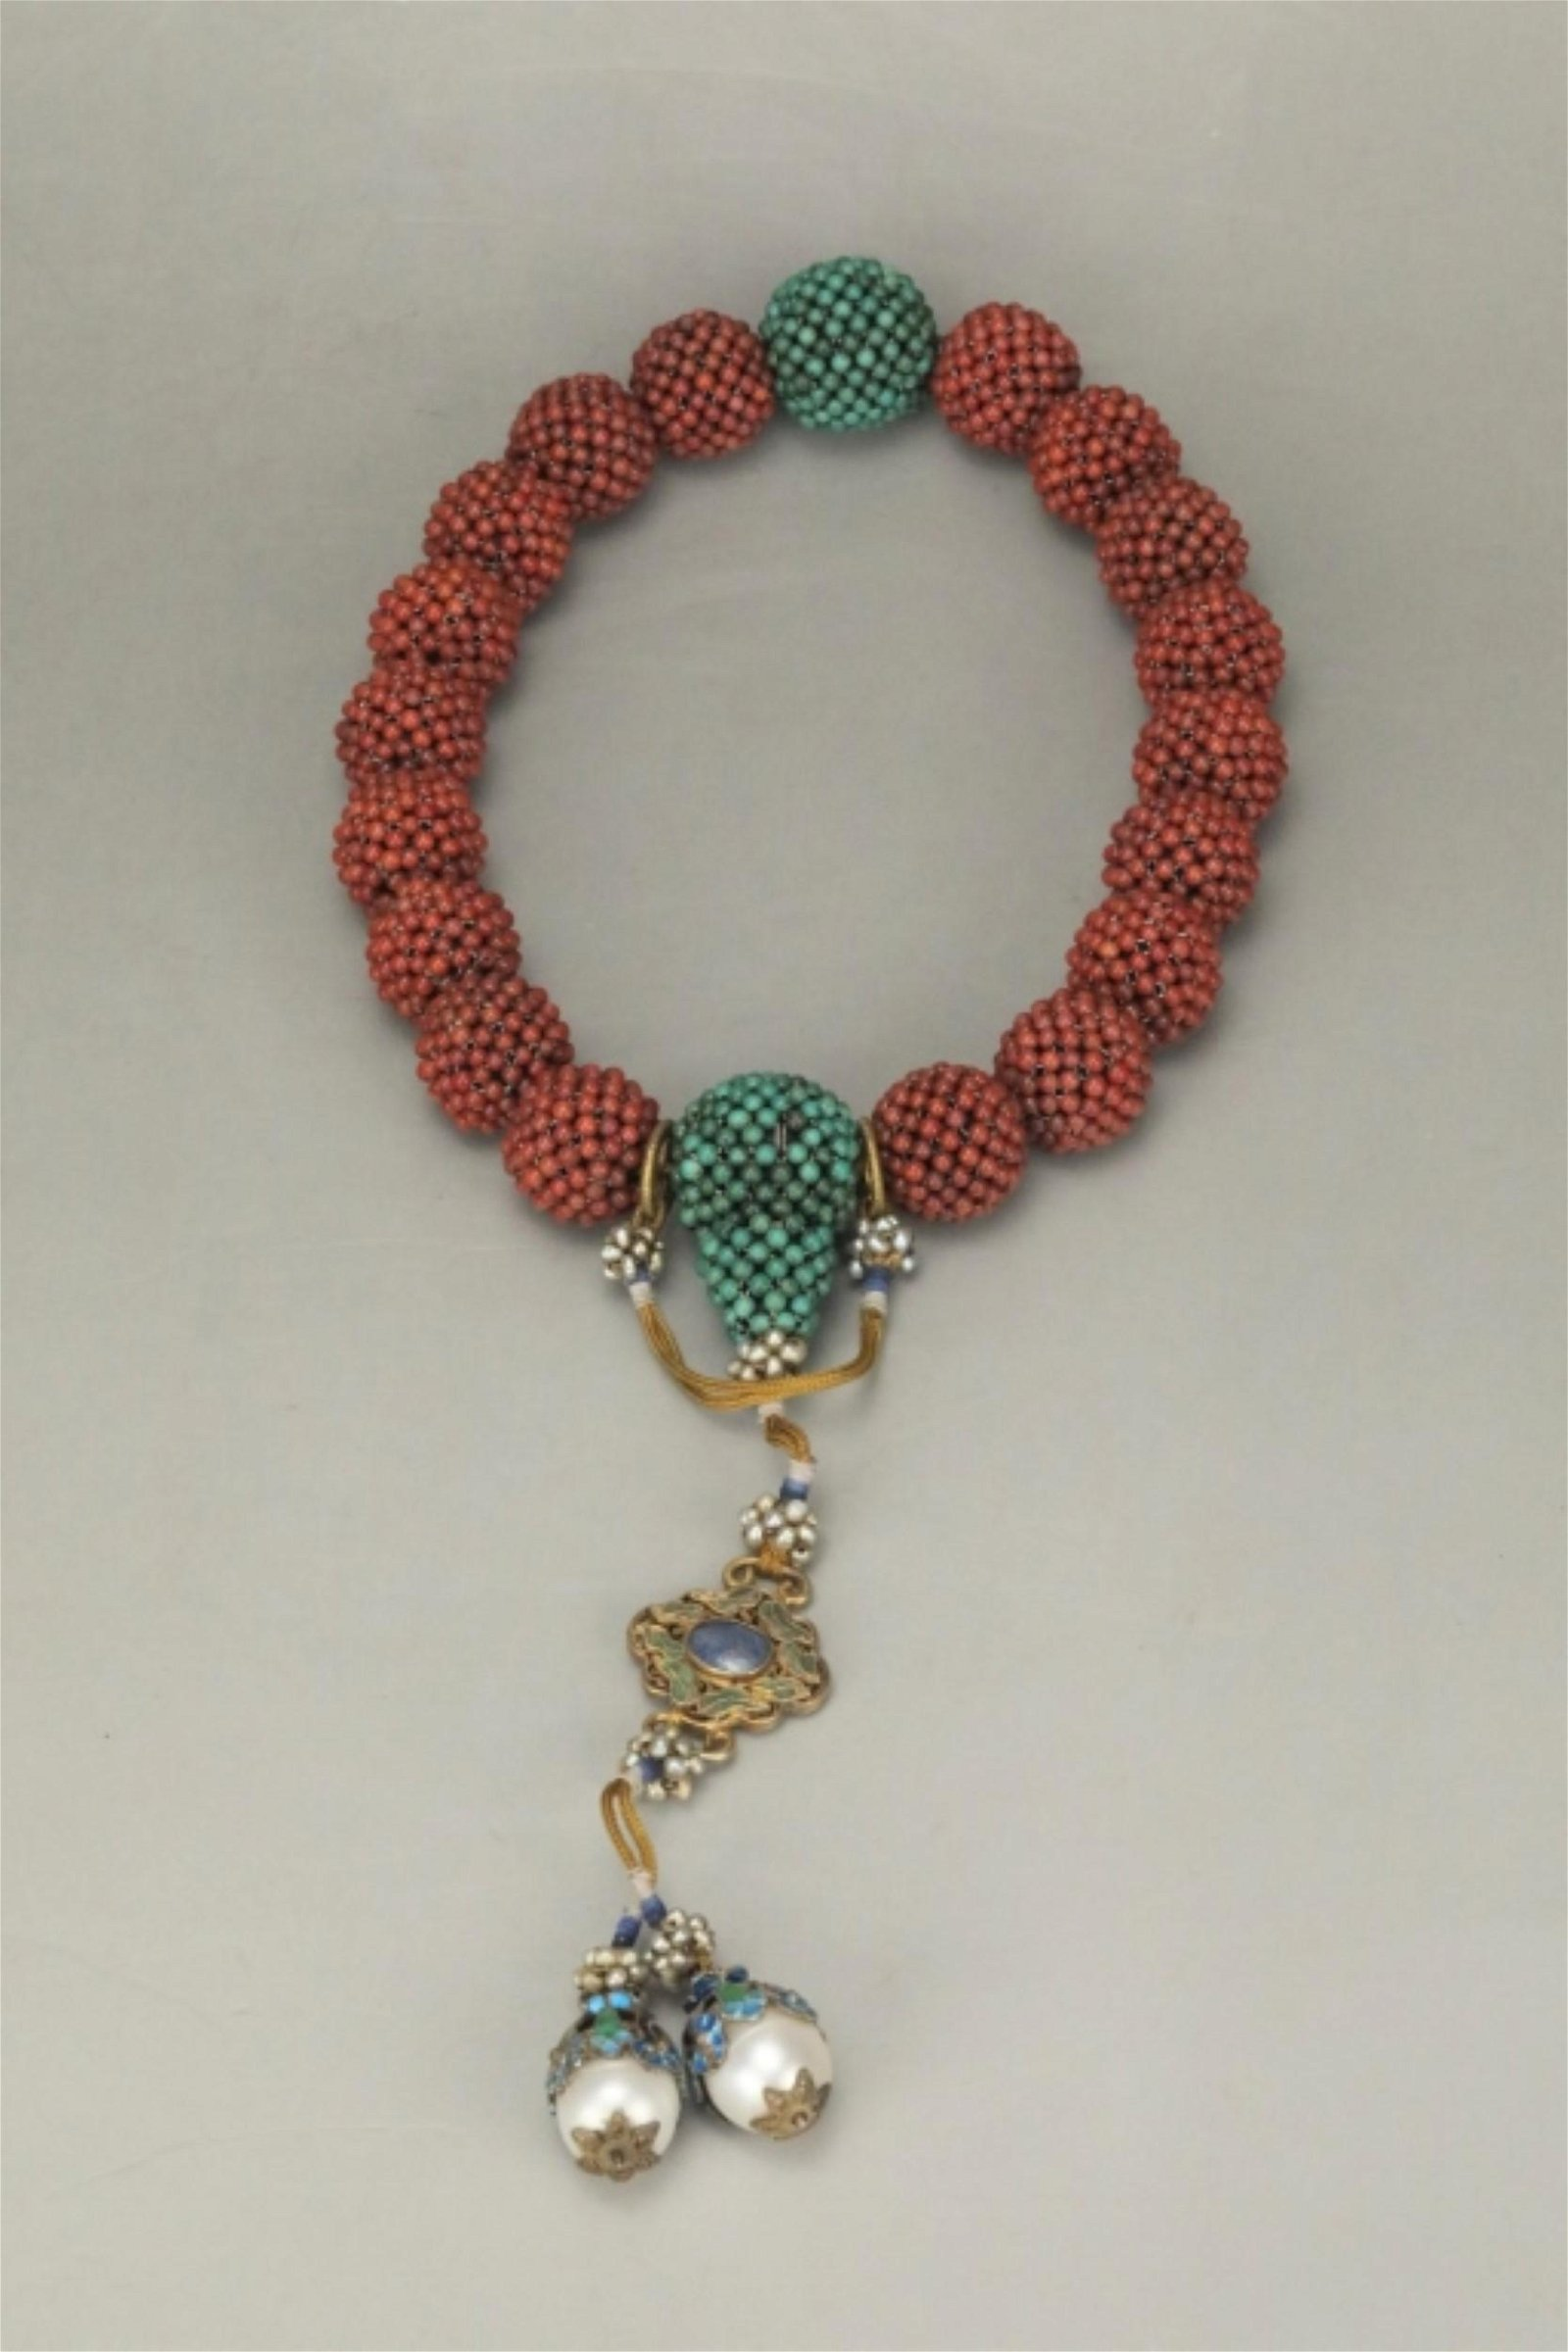 Chinese Woven Coral Bead 18 Bead Bracelet